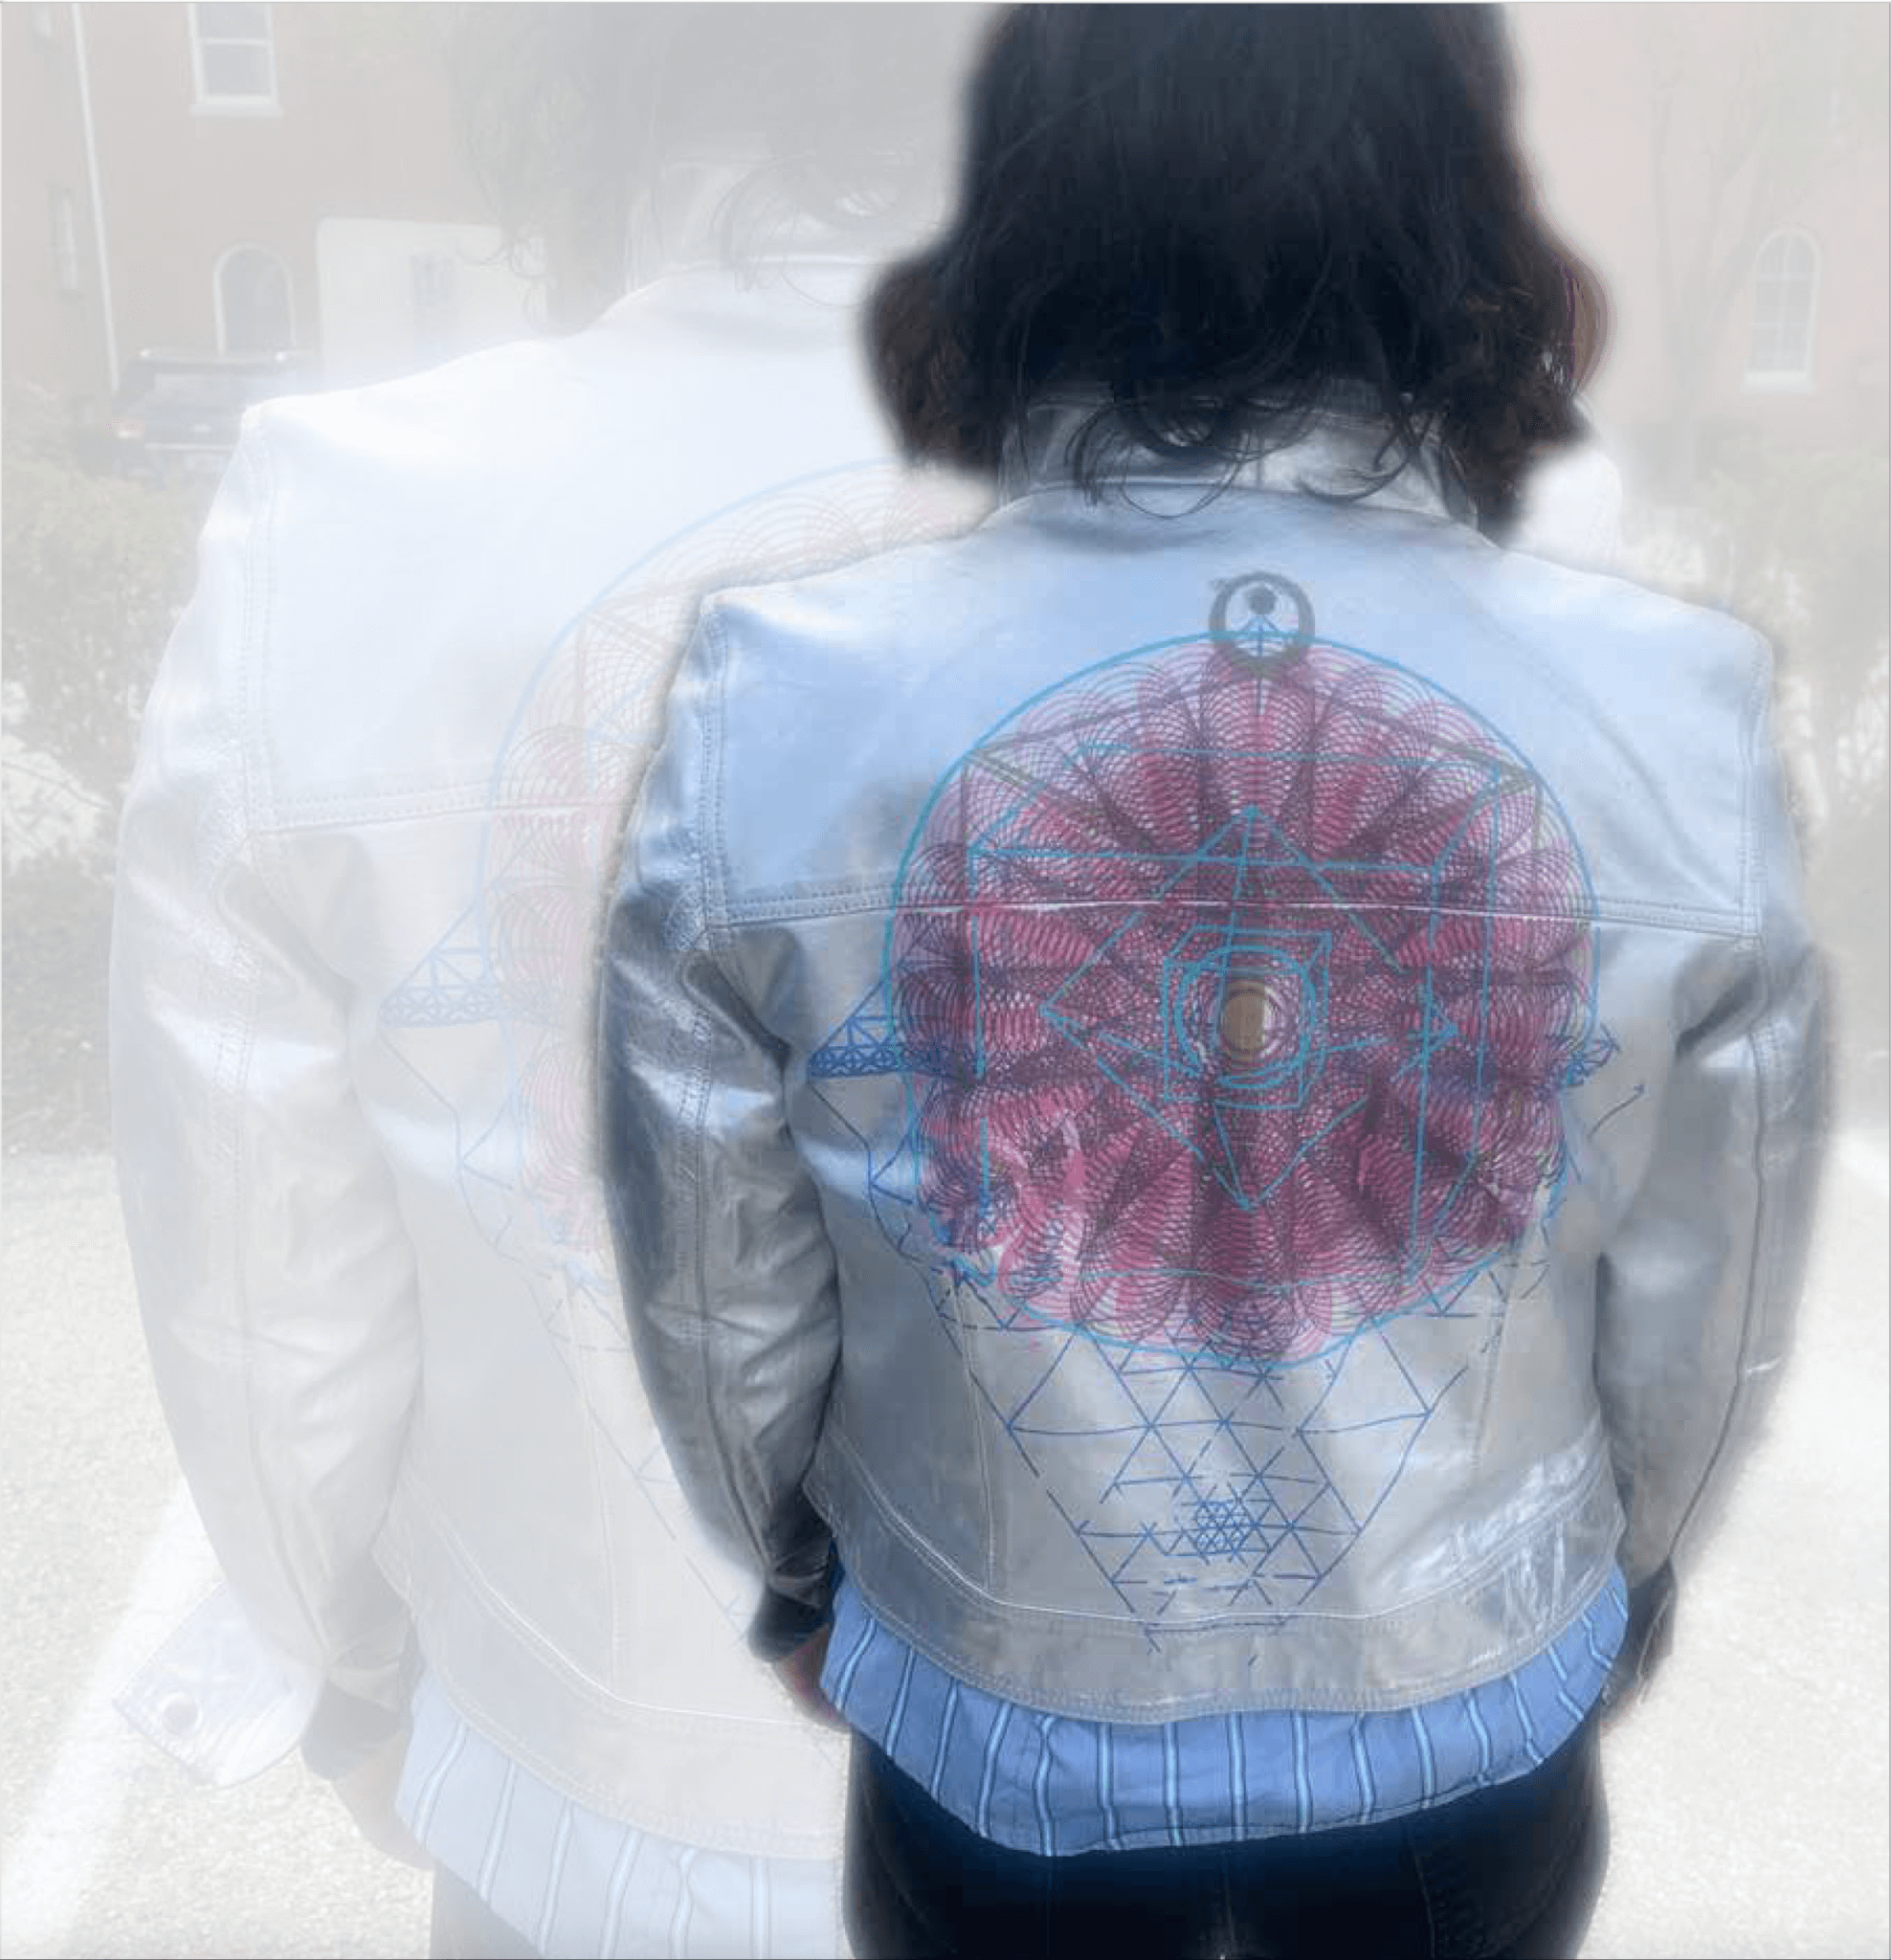 five-layer silver jacket silkscreen by Alison C. Wallis | Artscope Magazine